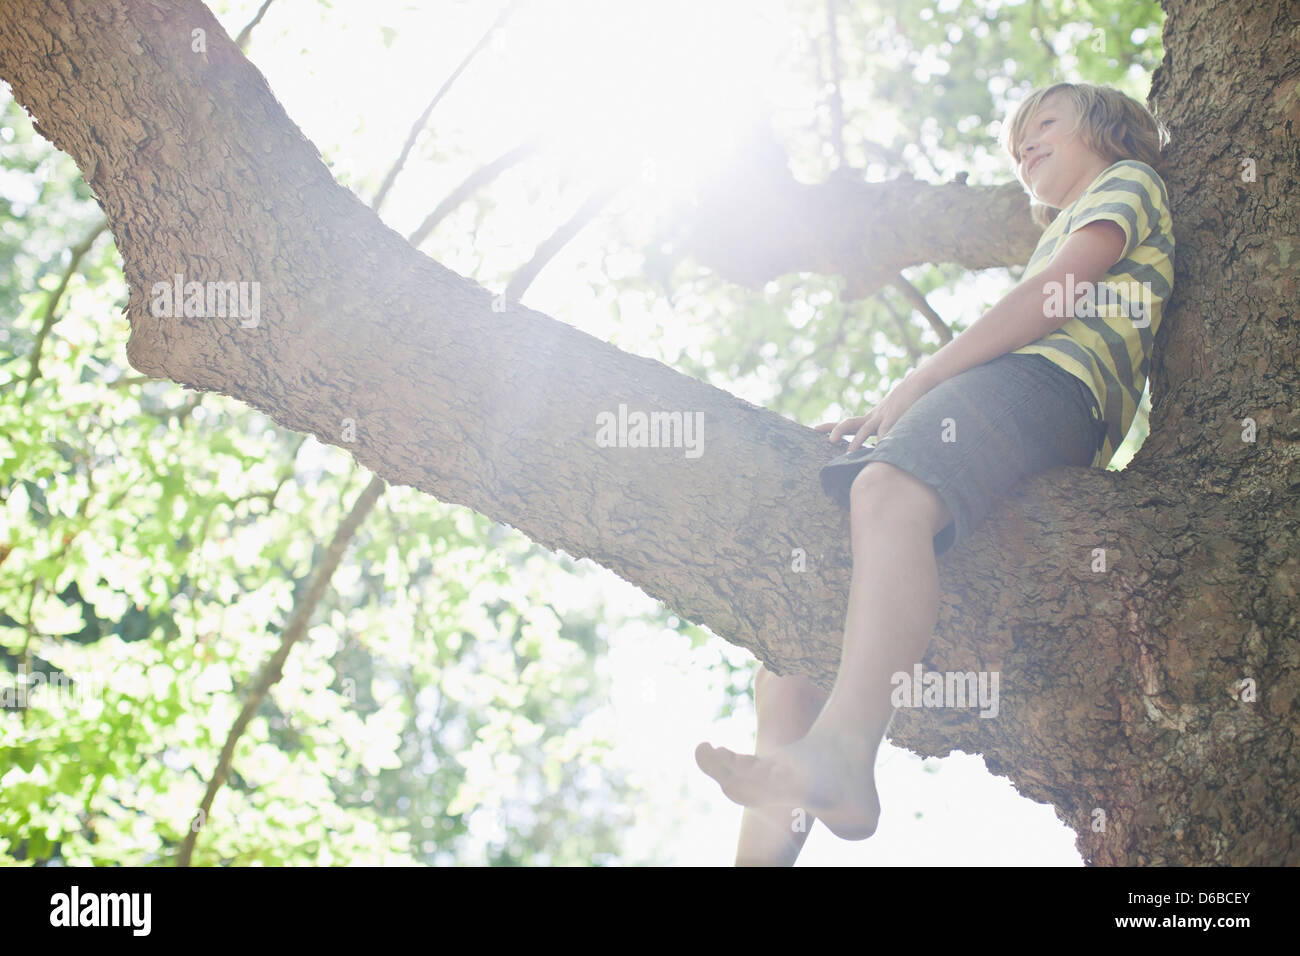 Smiling boy sitting in tree Photo Stock